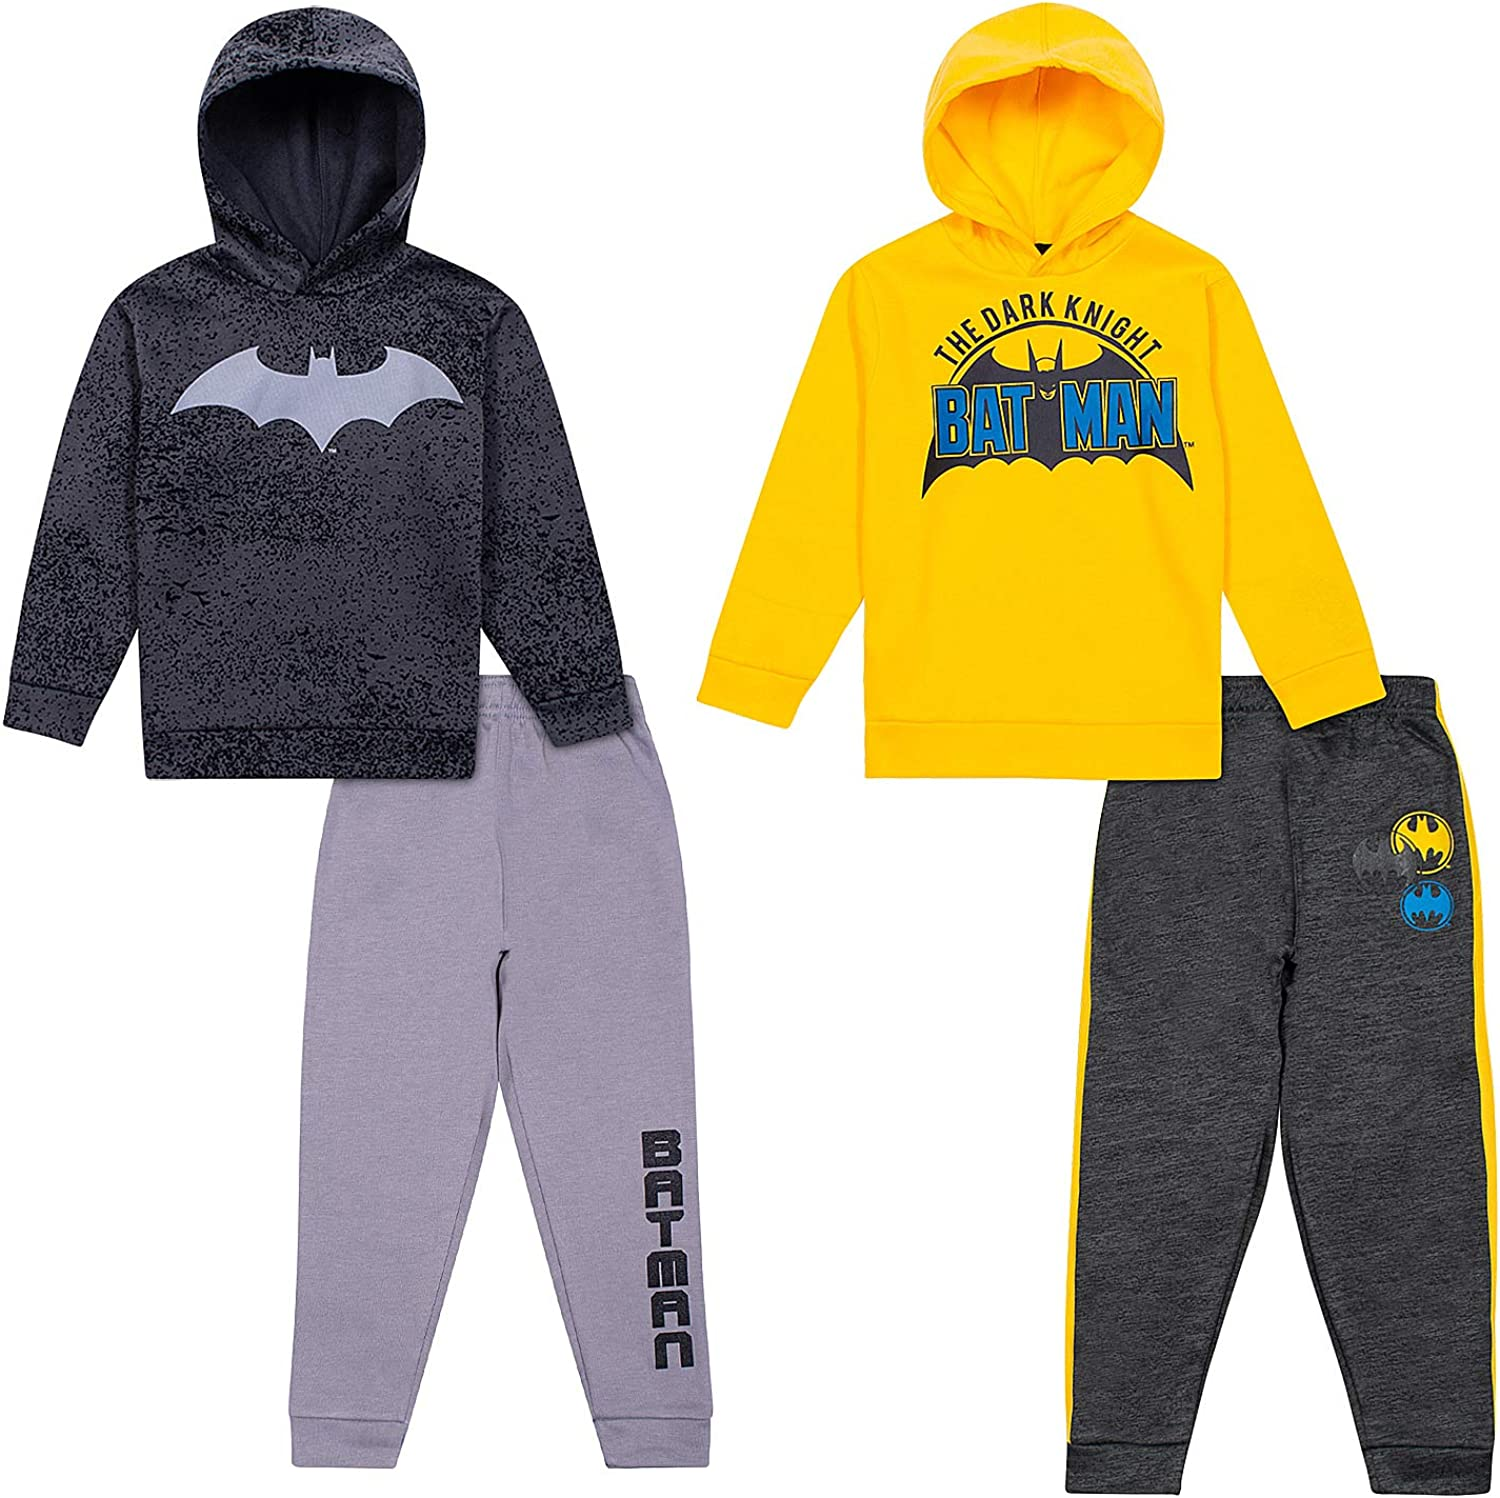 Batman Hoodies Sweatshirts & Sweatpants 4 Piece Set, Kids Clothes...